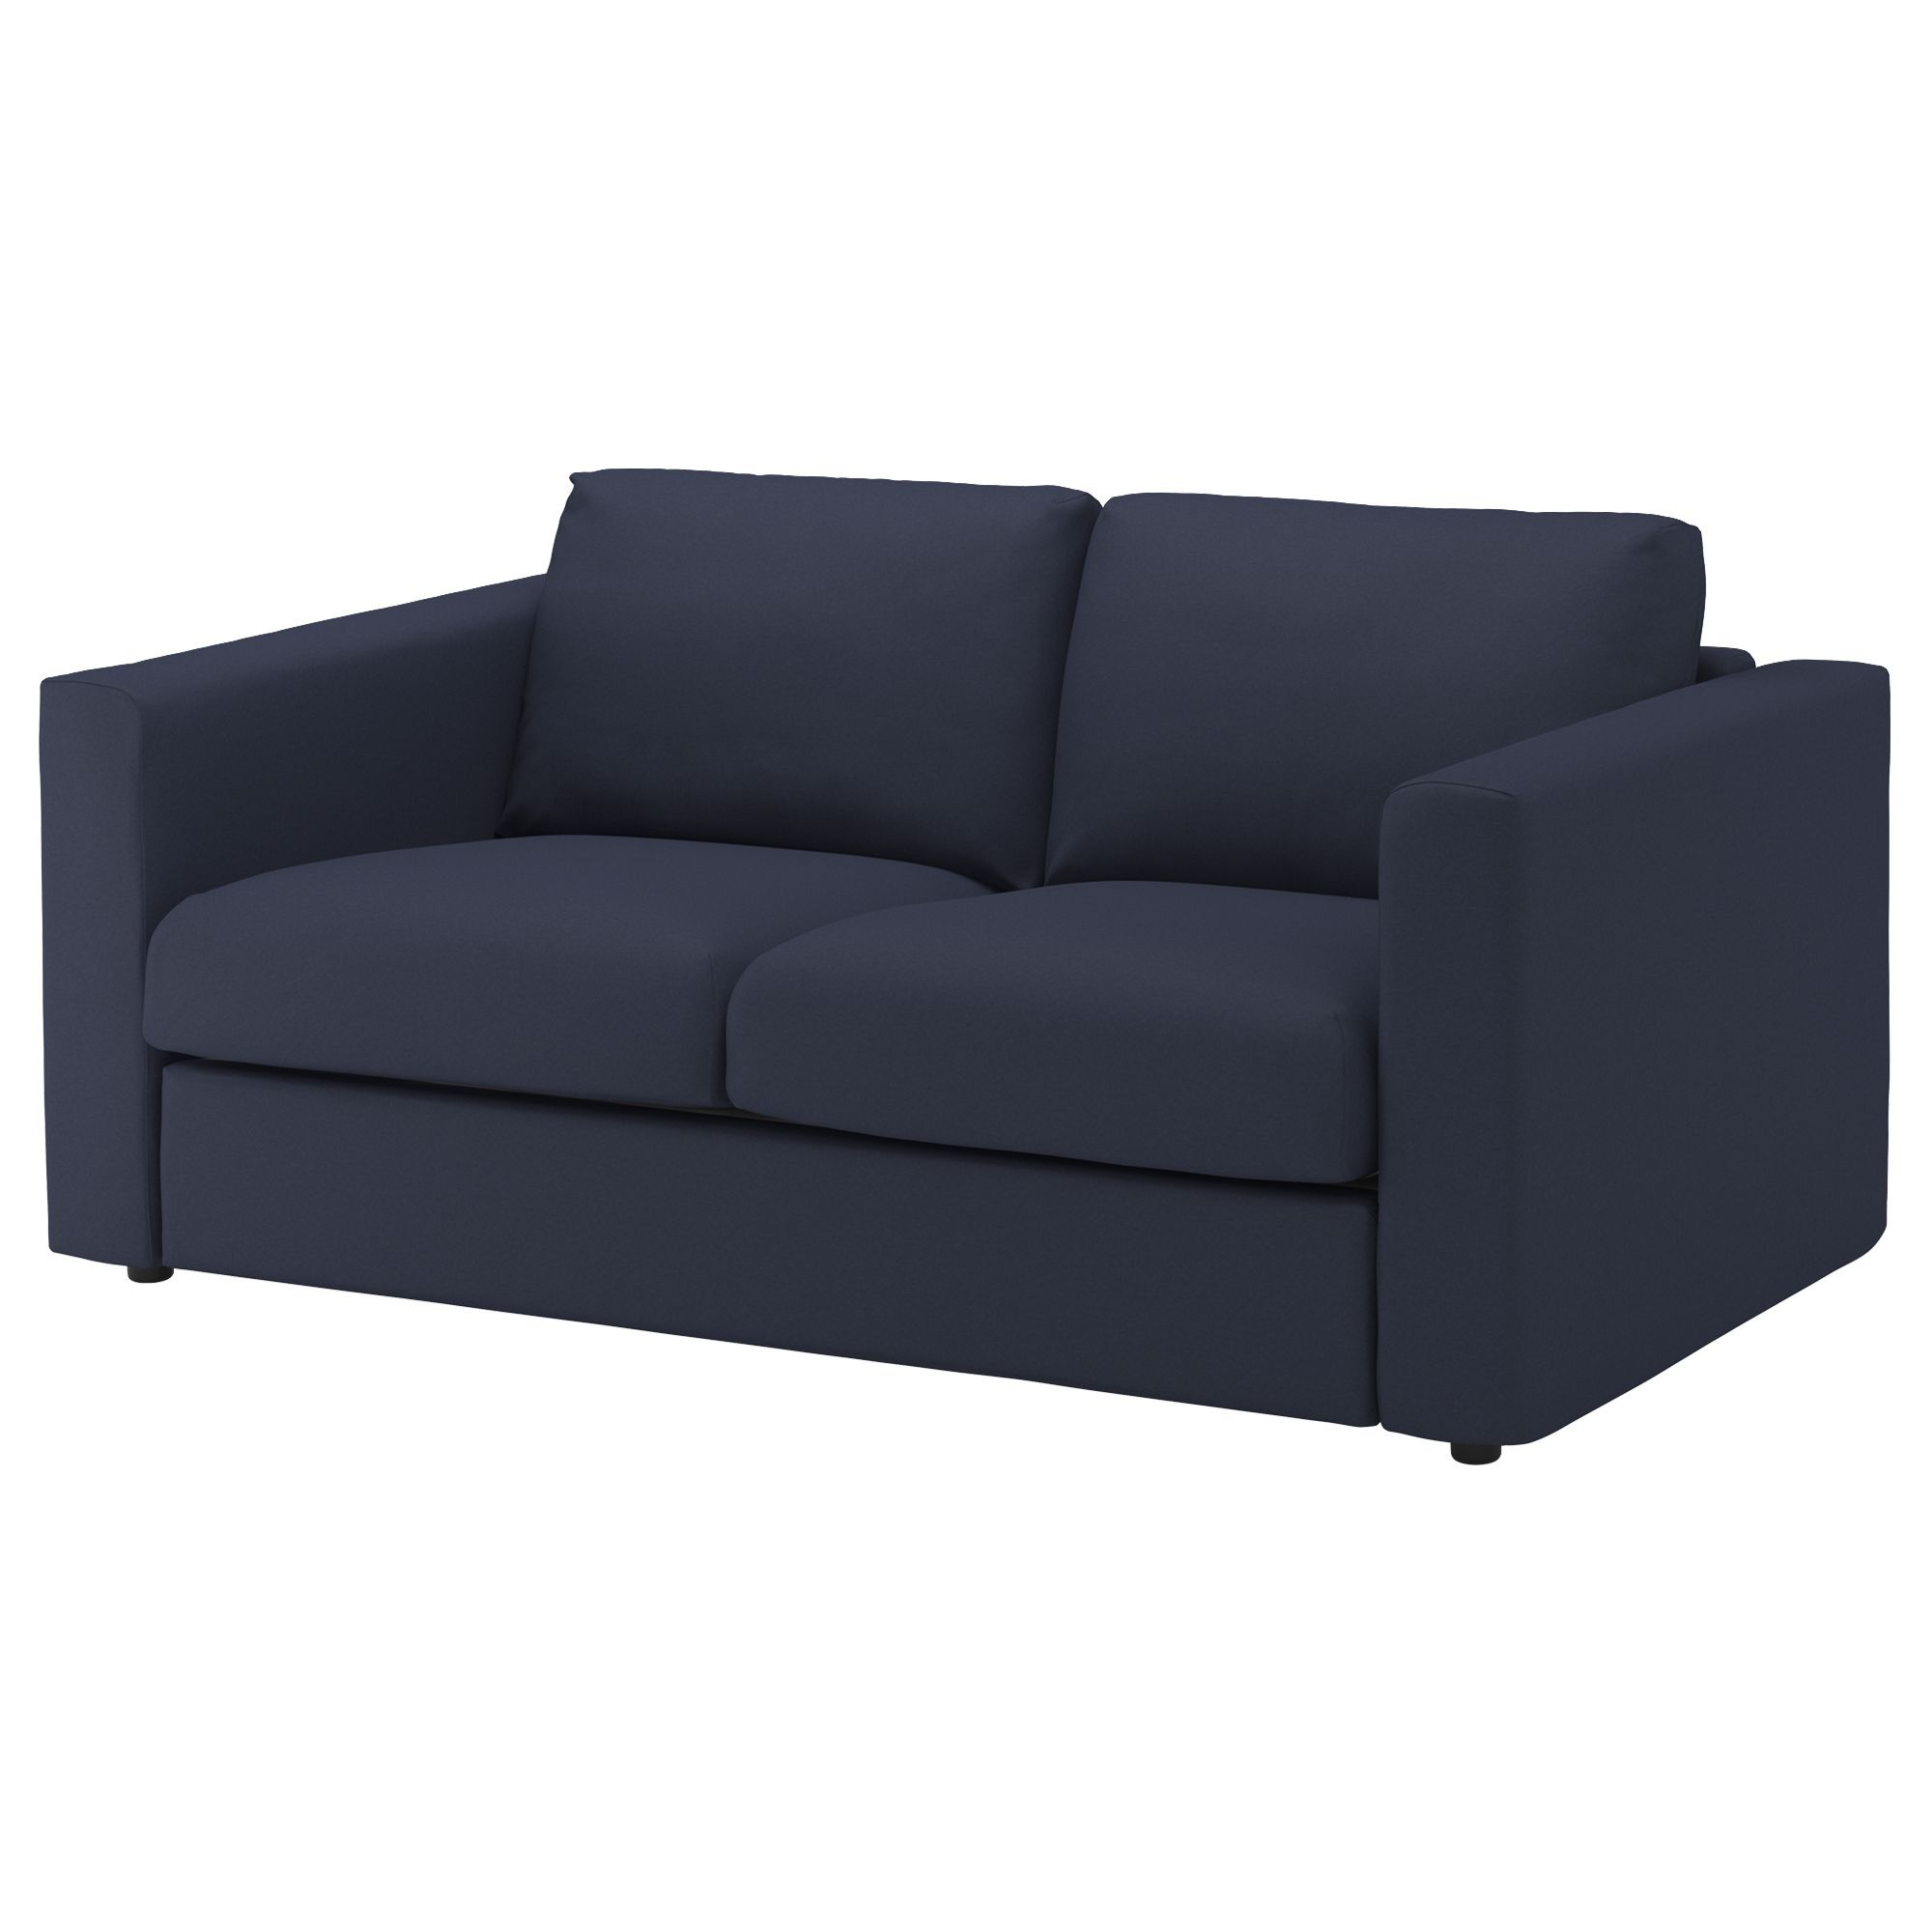 Canapé Vert Ikea Vimle Cover For Loveseat Orrsta Black Blue Products